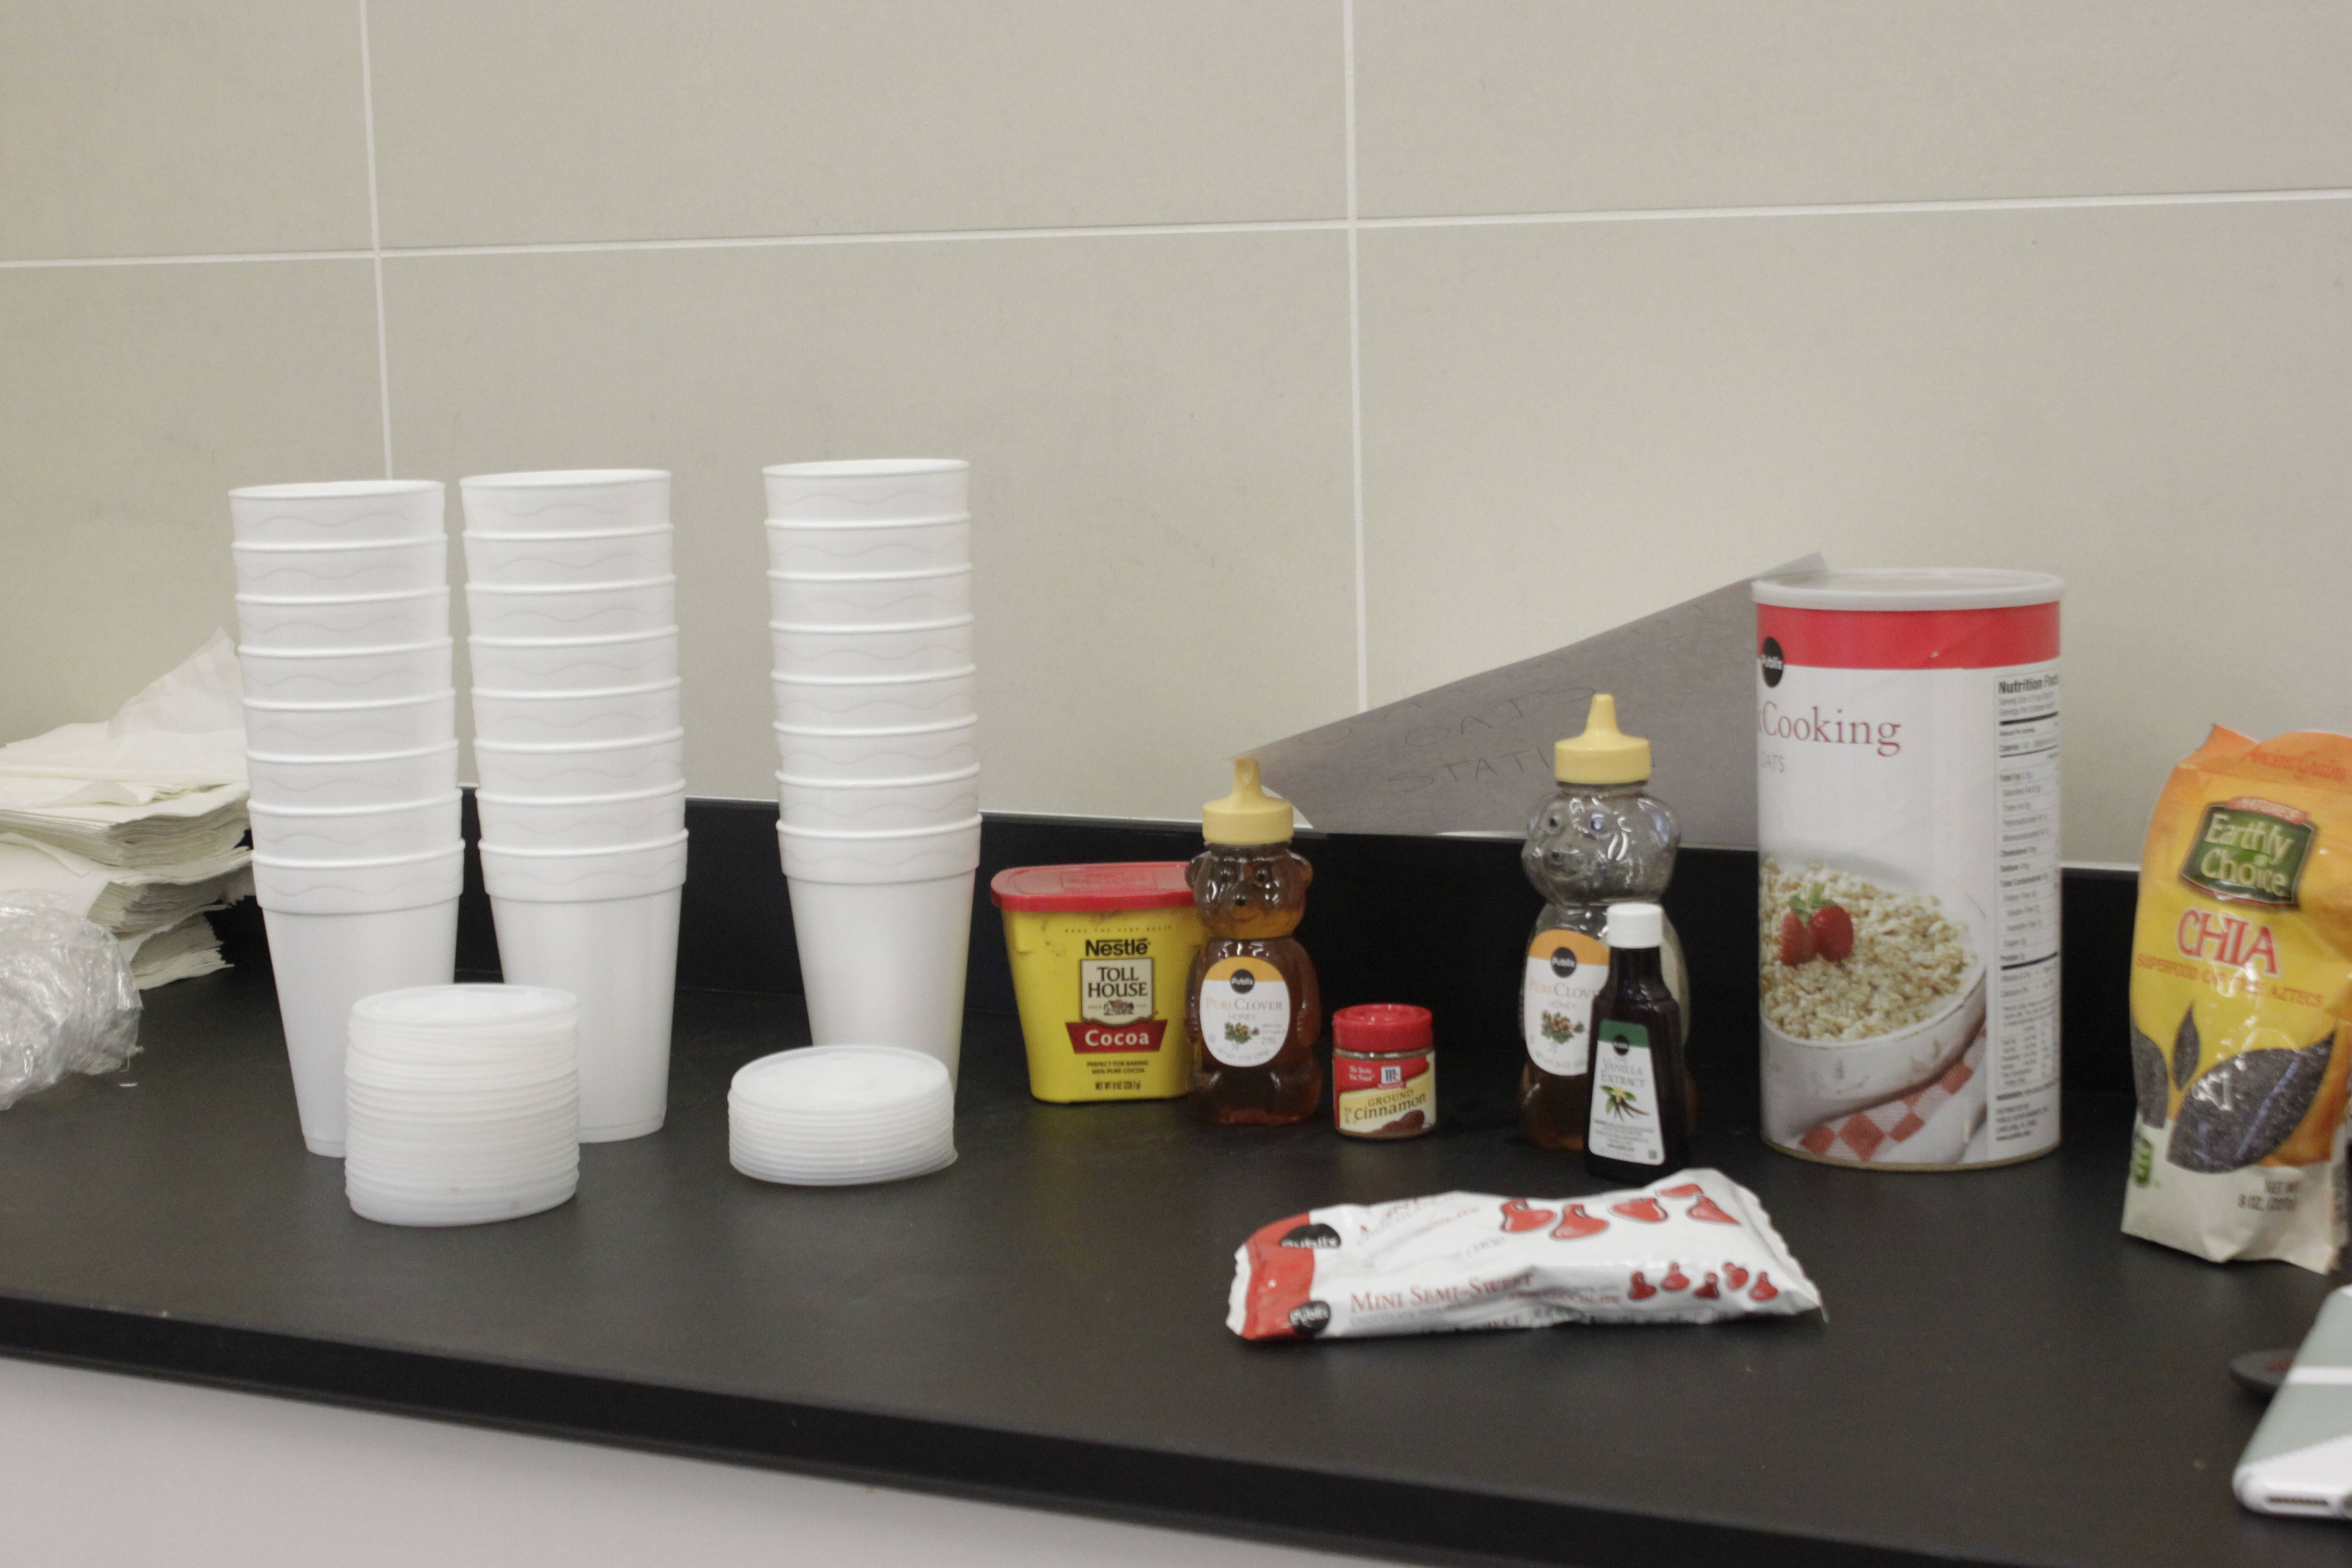 The ingredients for overnight oats.